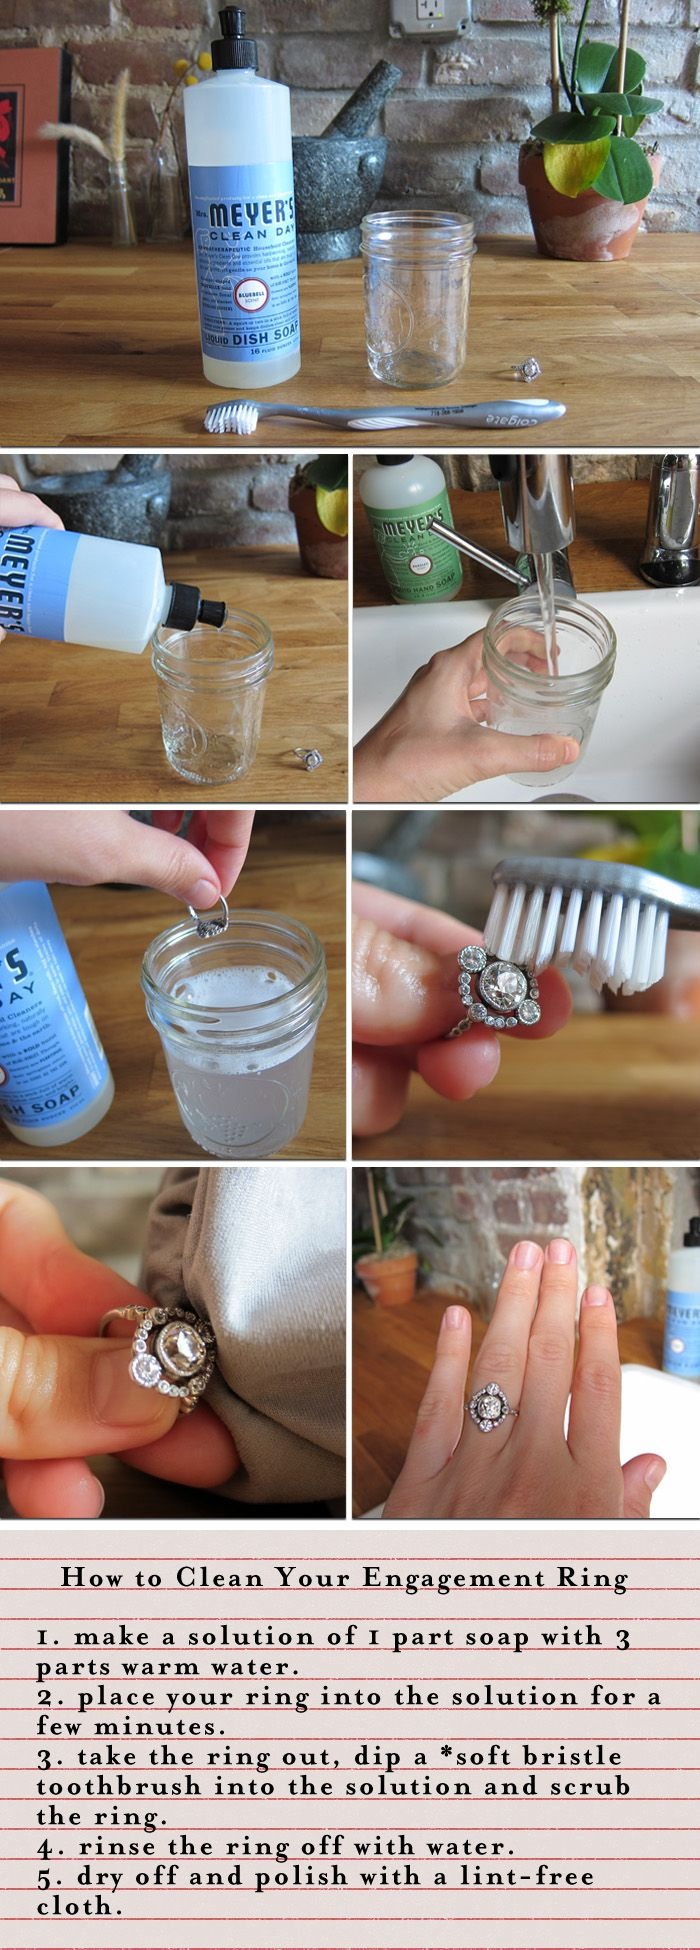 how to clean your engagement ring (or in my case, any fine jewelry).